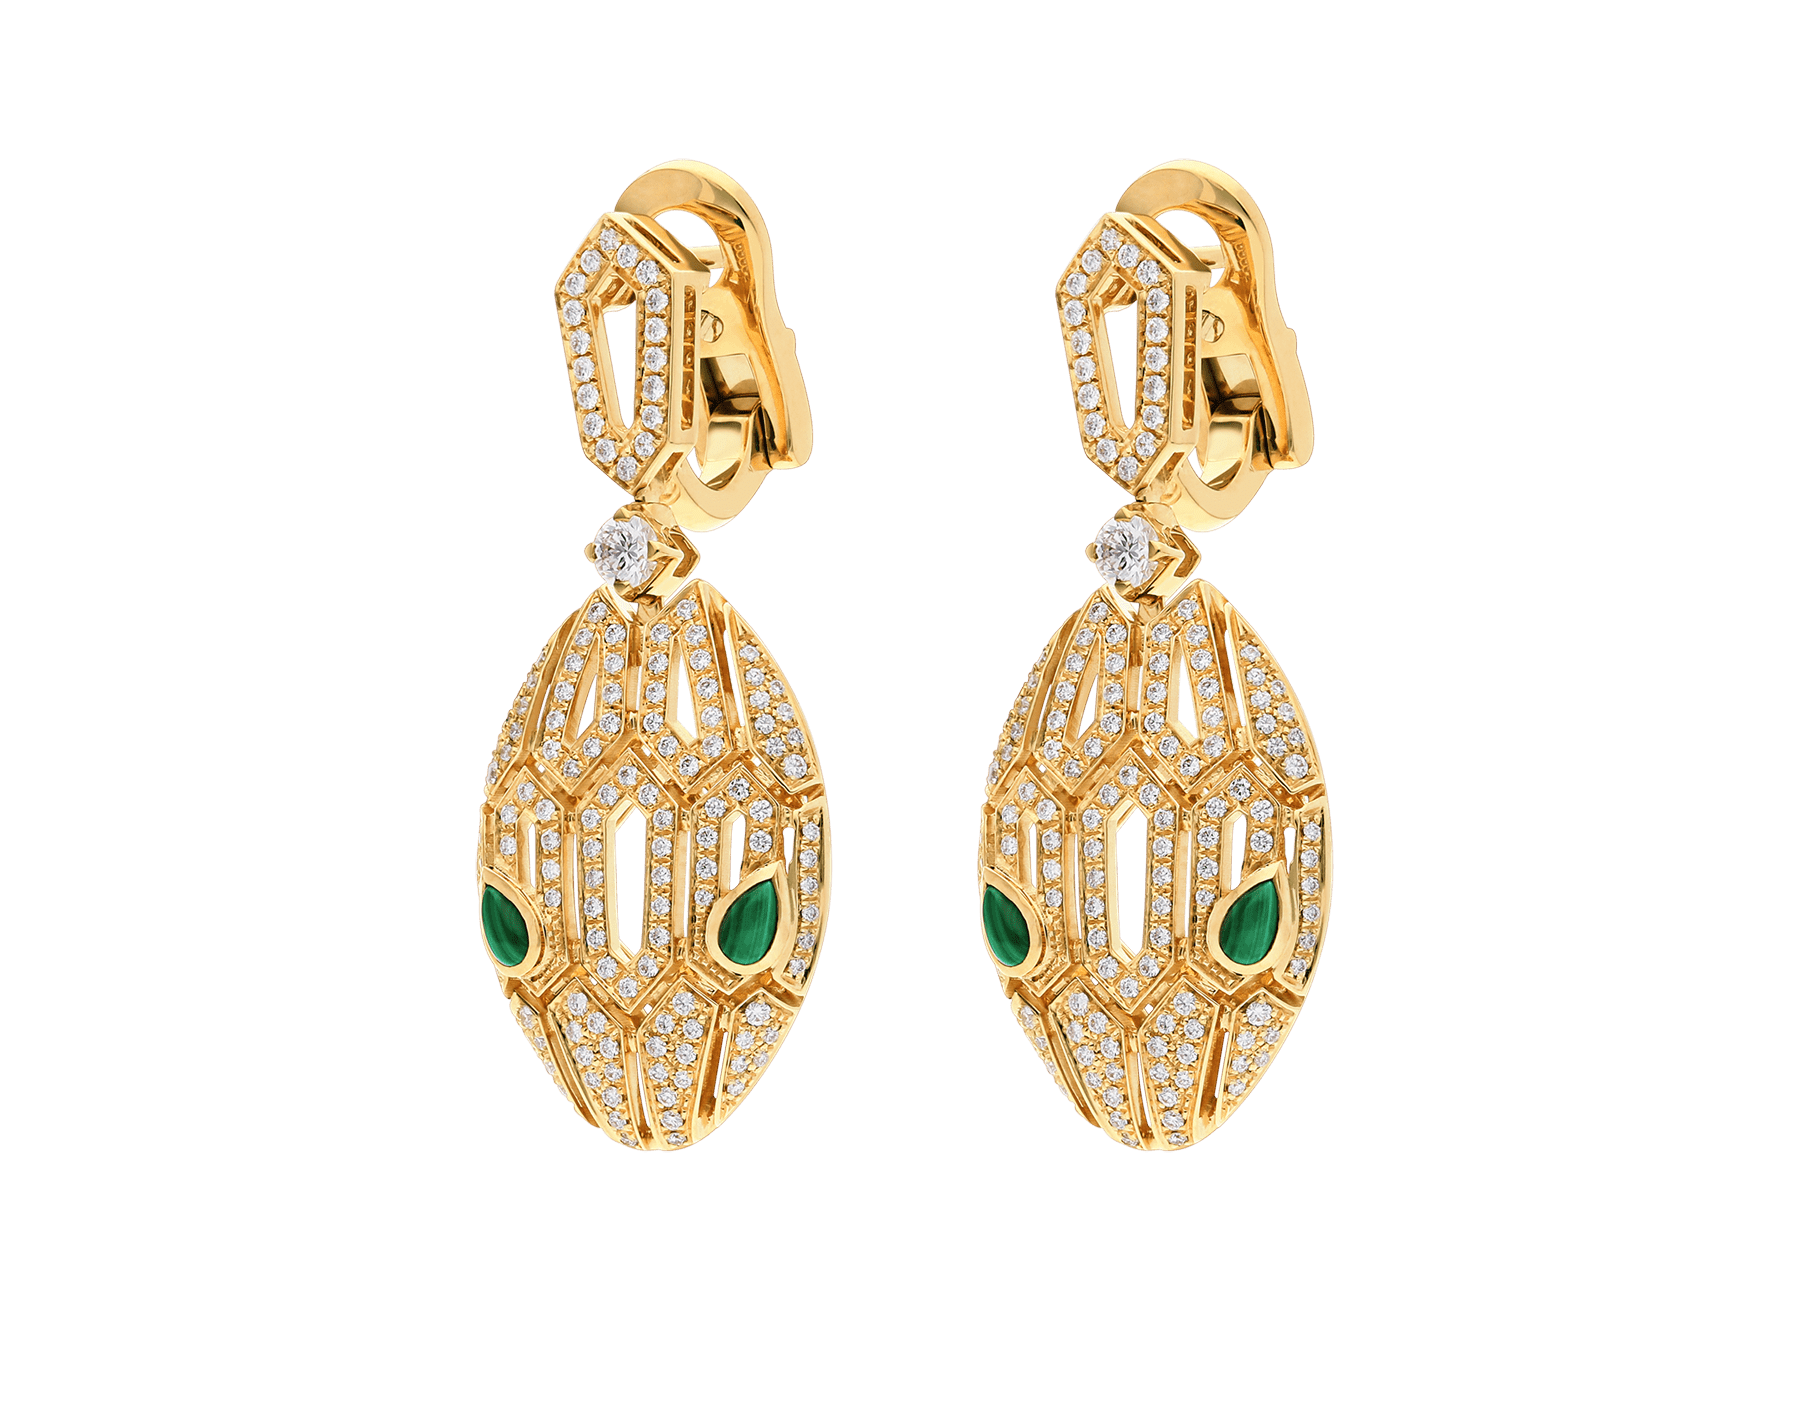 Serpenti 18 kt yellow gold earrings set with pavé diamonds and malachite eyes 354576 image 2